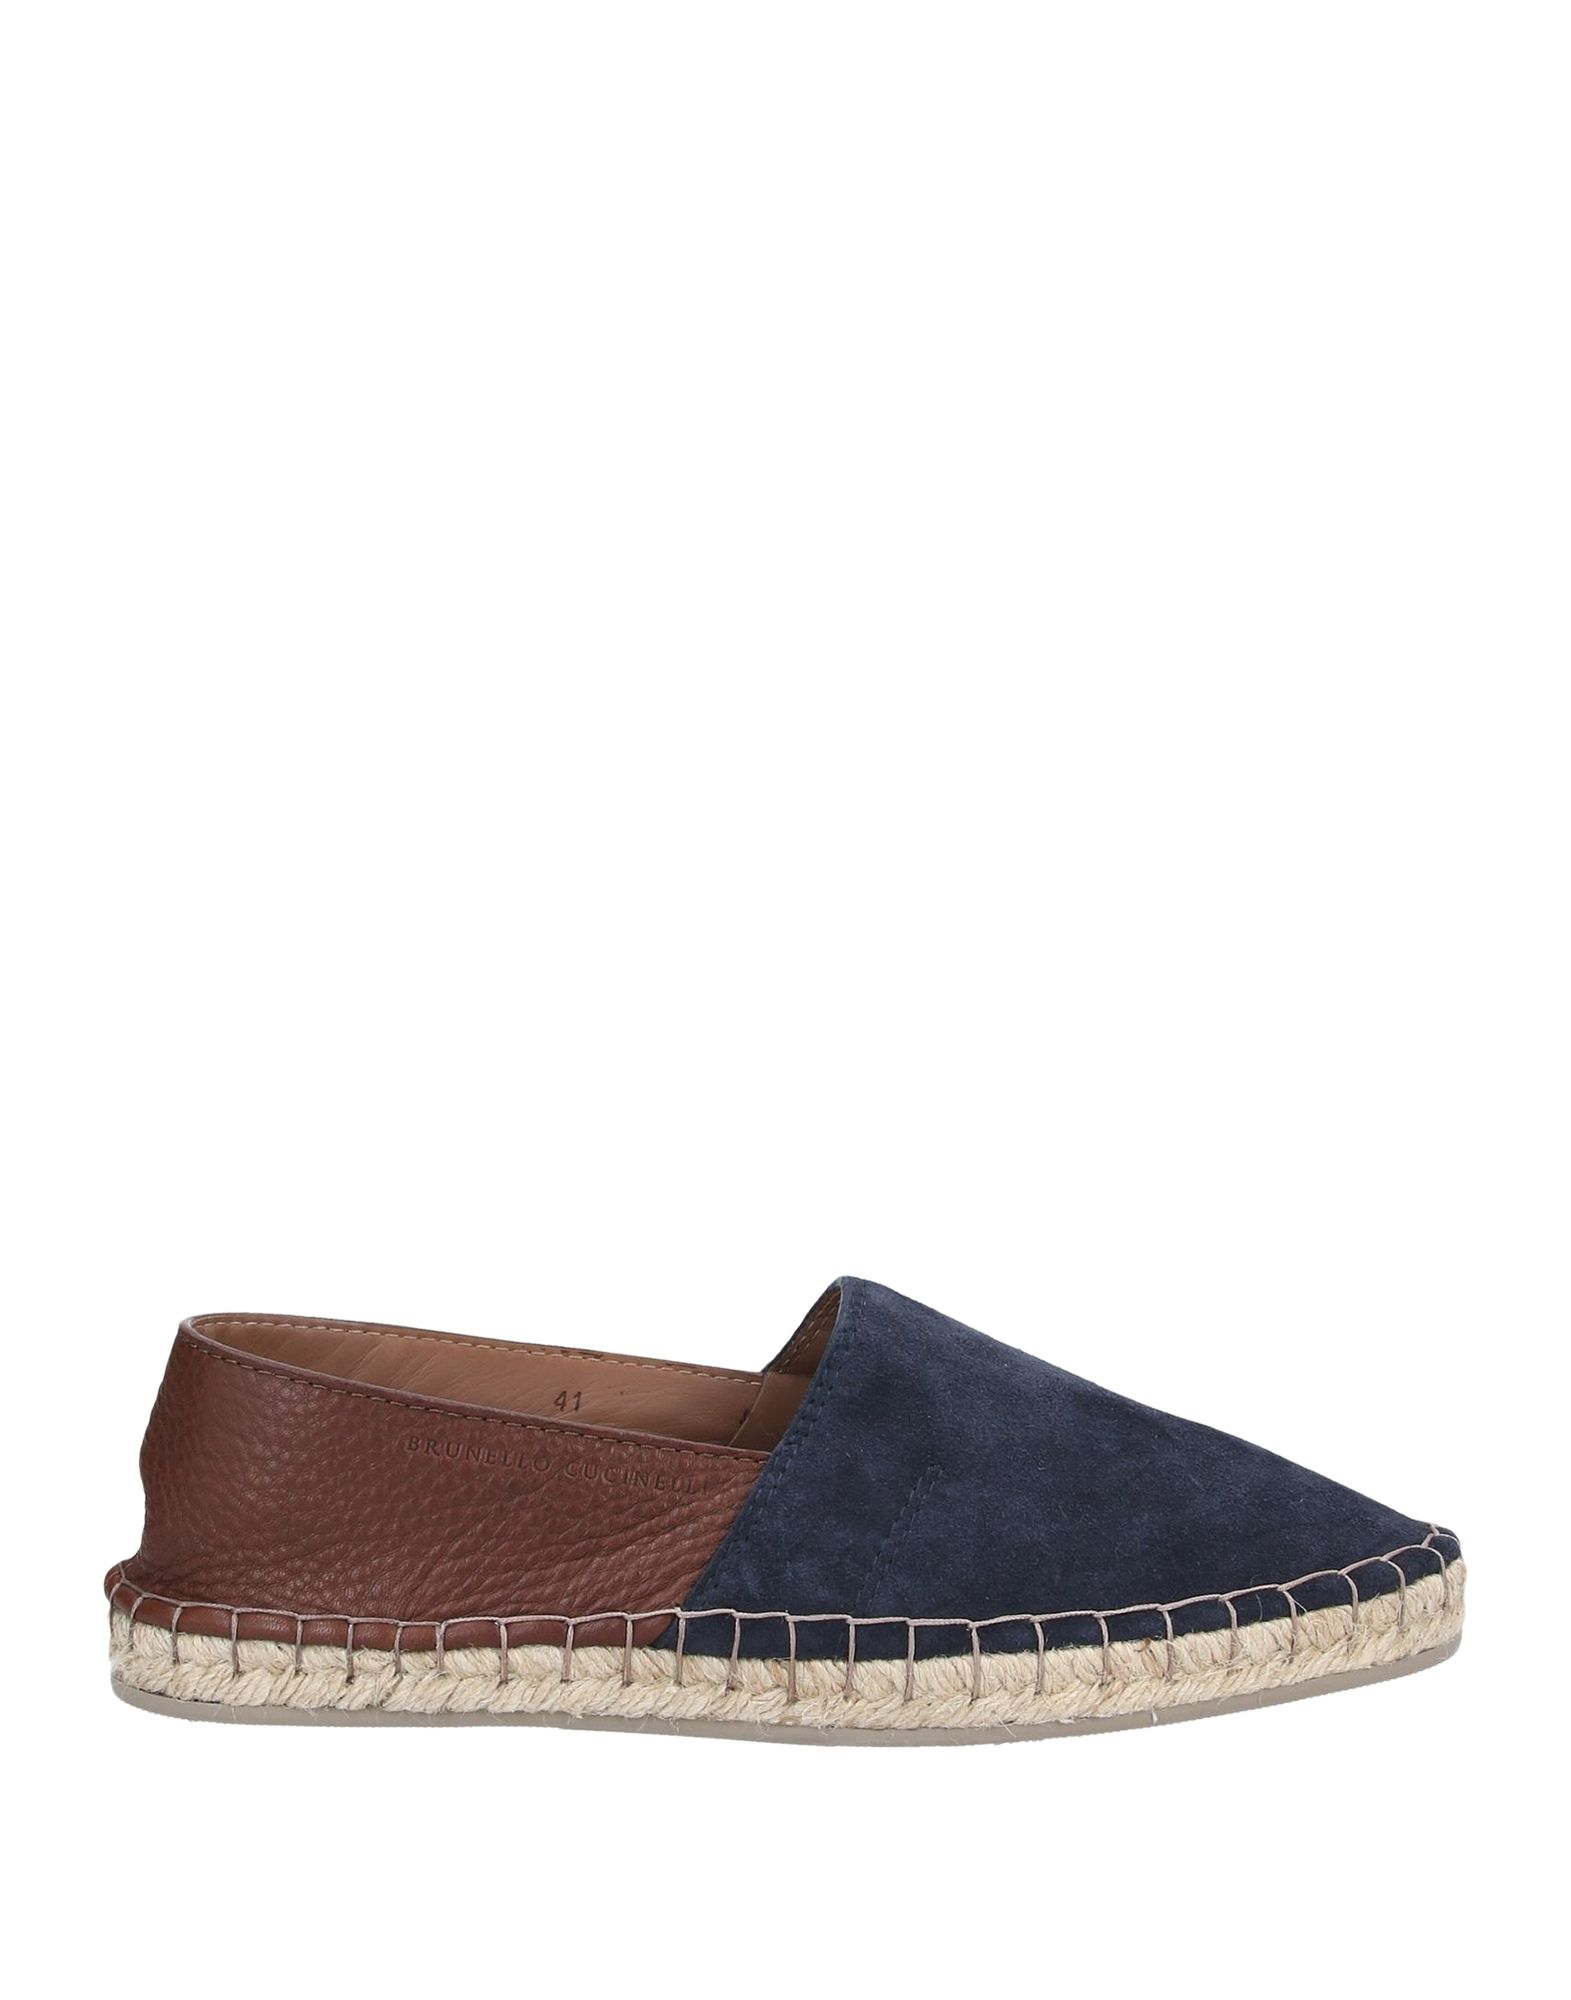 BRUNELLO CUCINELLI Espadrilles. textured leather, sueded effect, logo, two-tone pattern, round toeline, leather lining, rubber sole, flat, contains non-textile parts of animal origin. Soft Leather